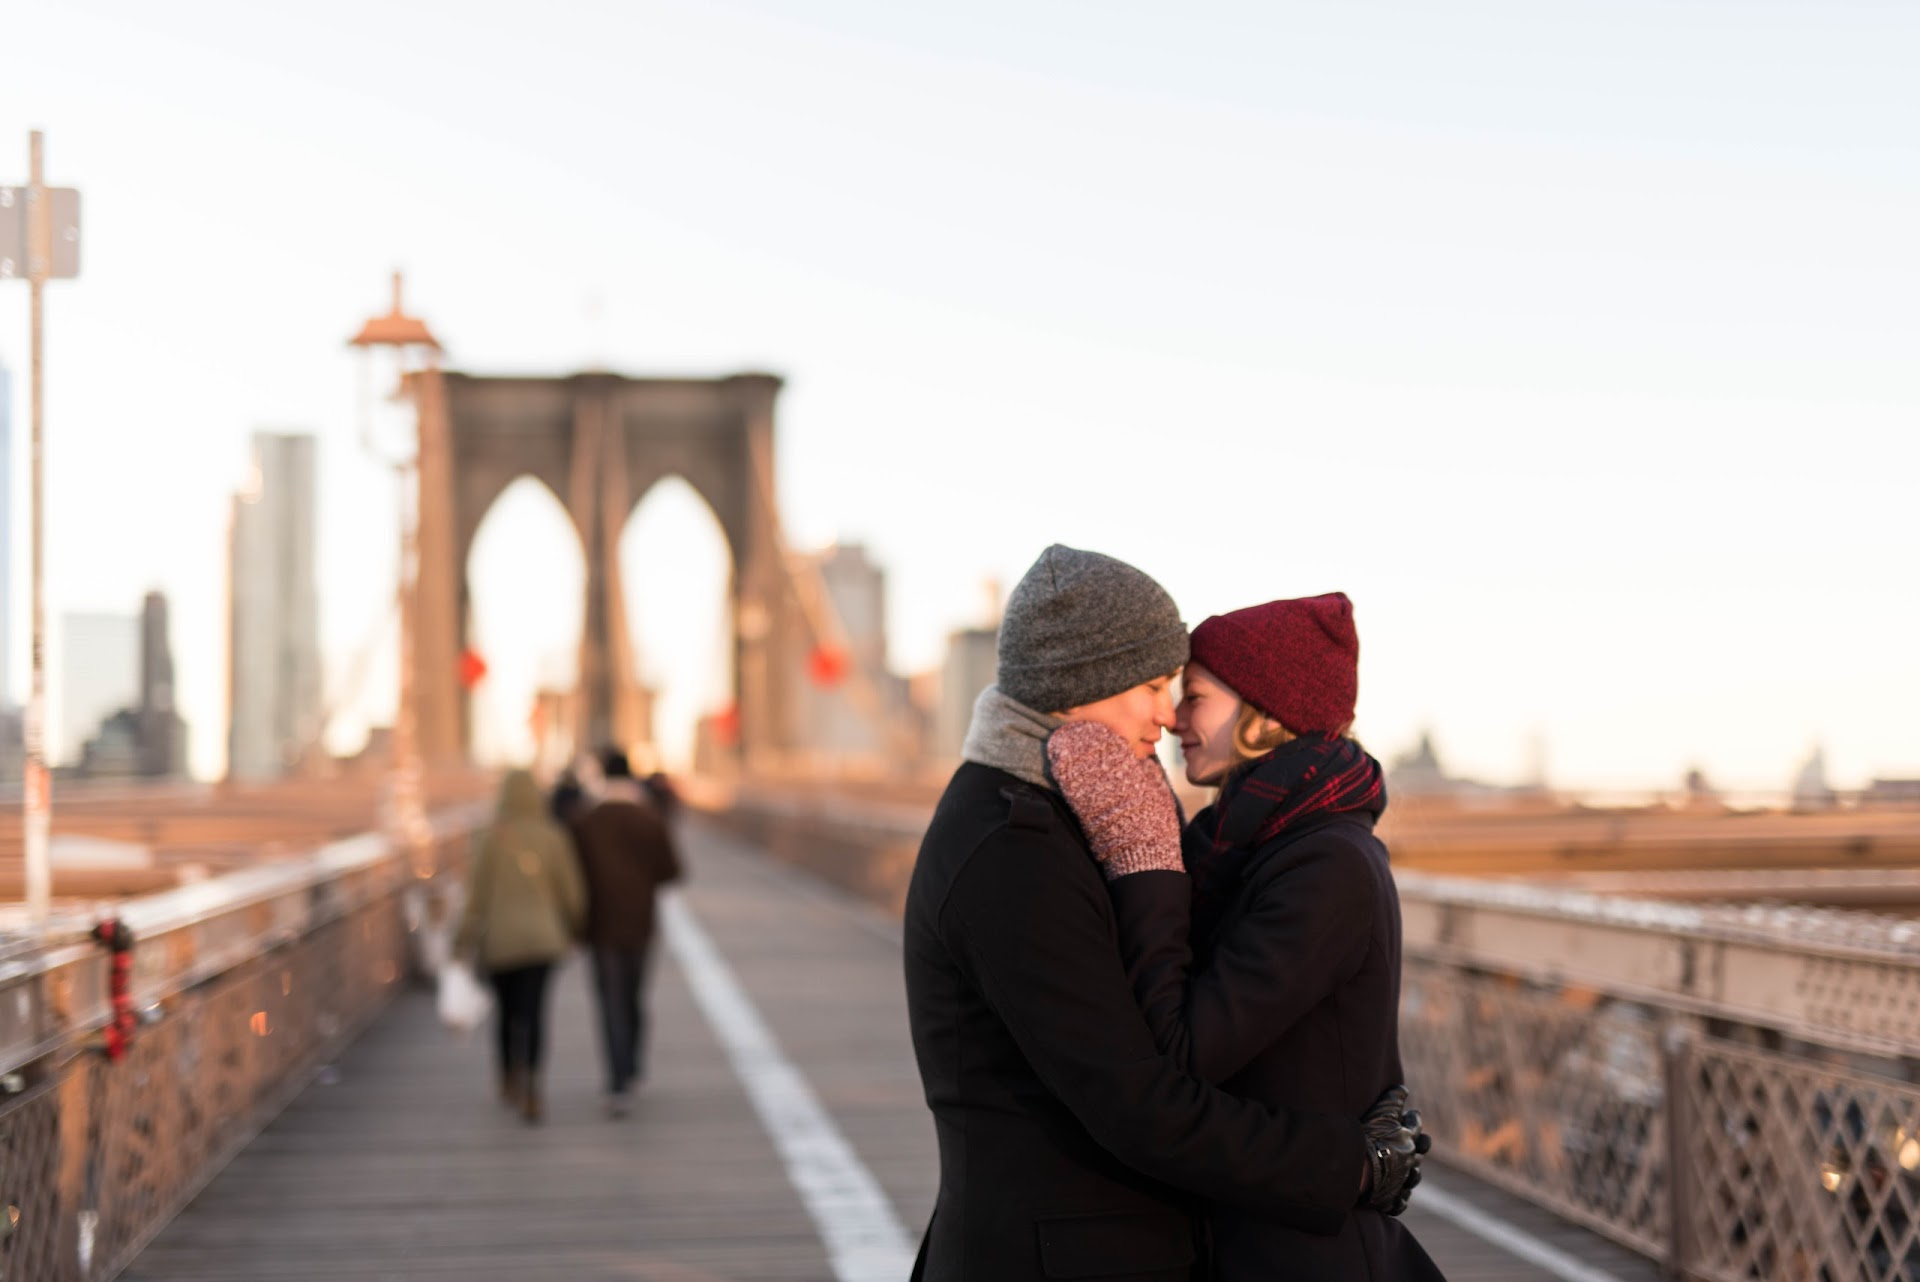 brooklyn bridge, engagements, couple, photography, bridge, winter, nyc, new york, manhattan architecture, skyline, winter engagement photo outfits, poses, ideas